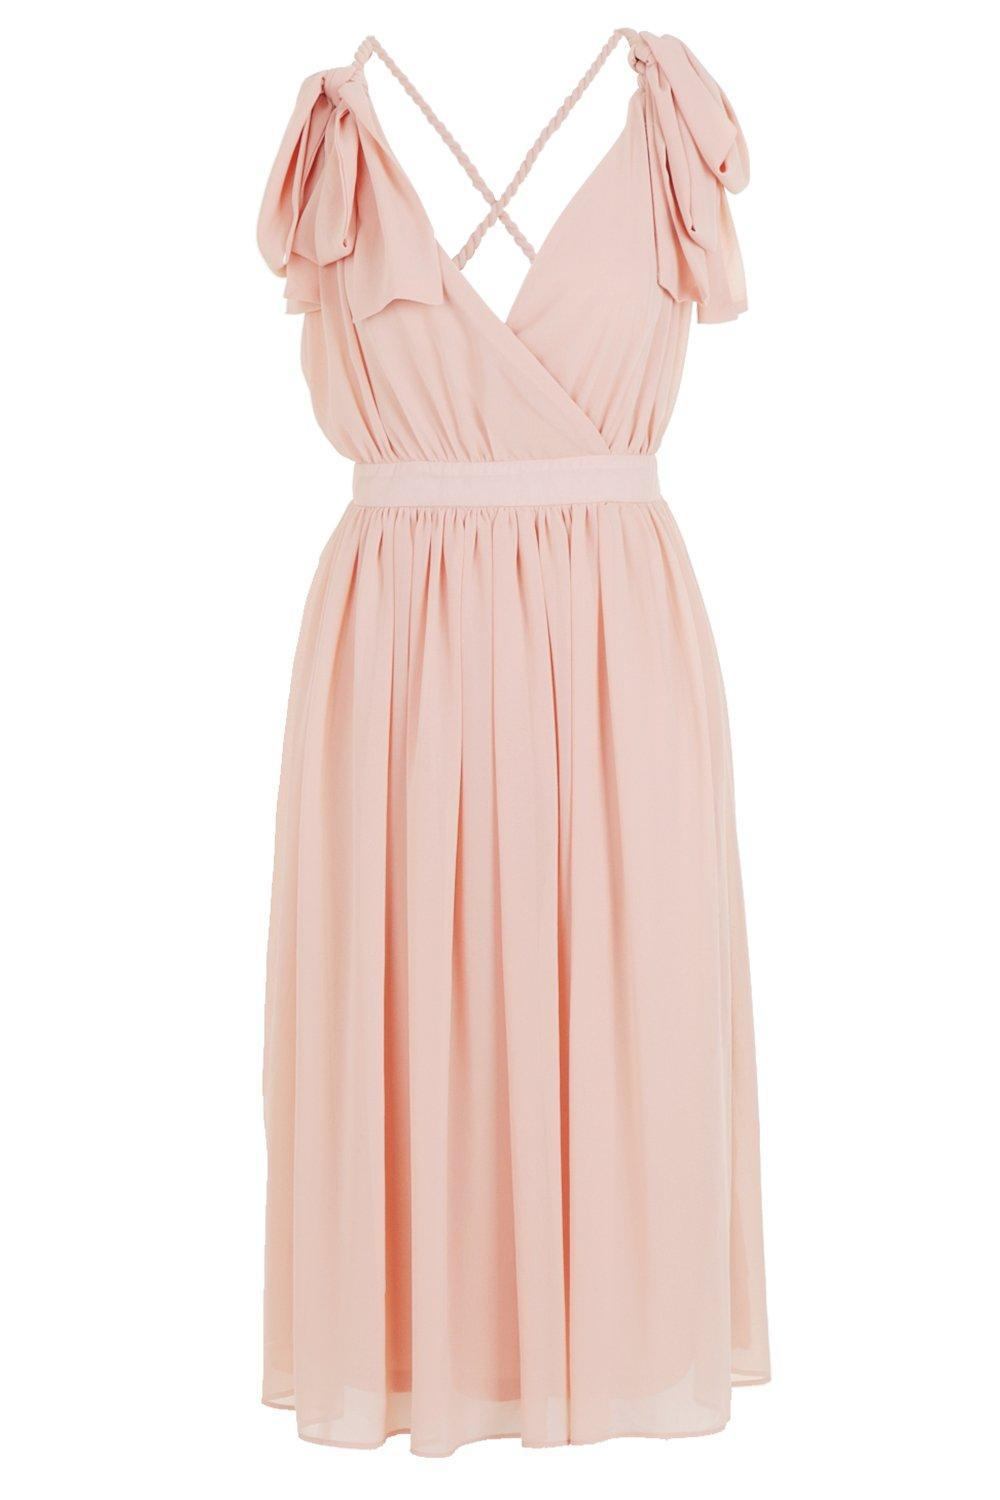 e4308b55c0 Boohoo - Pink Chiffon Pleated Back Midi Skater Dress - Lyst. View fullscreen